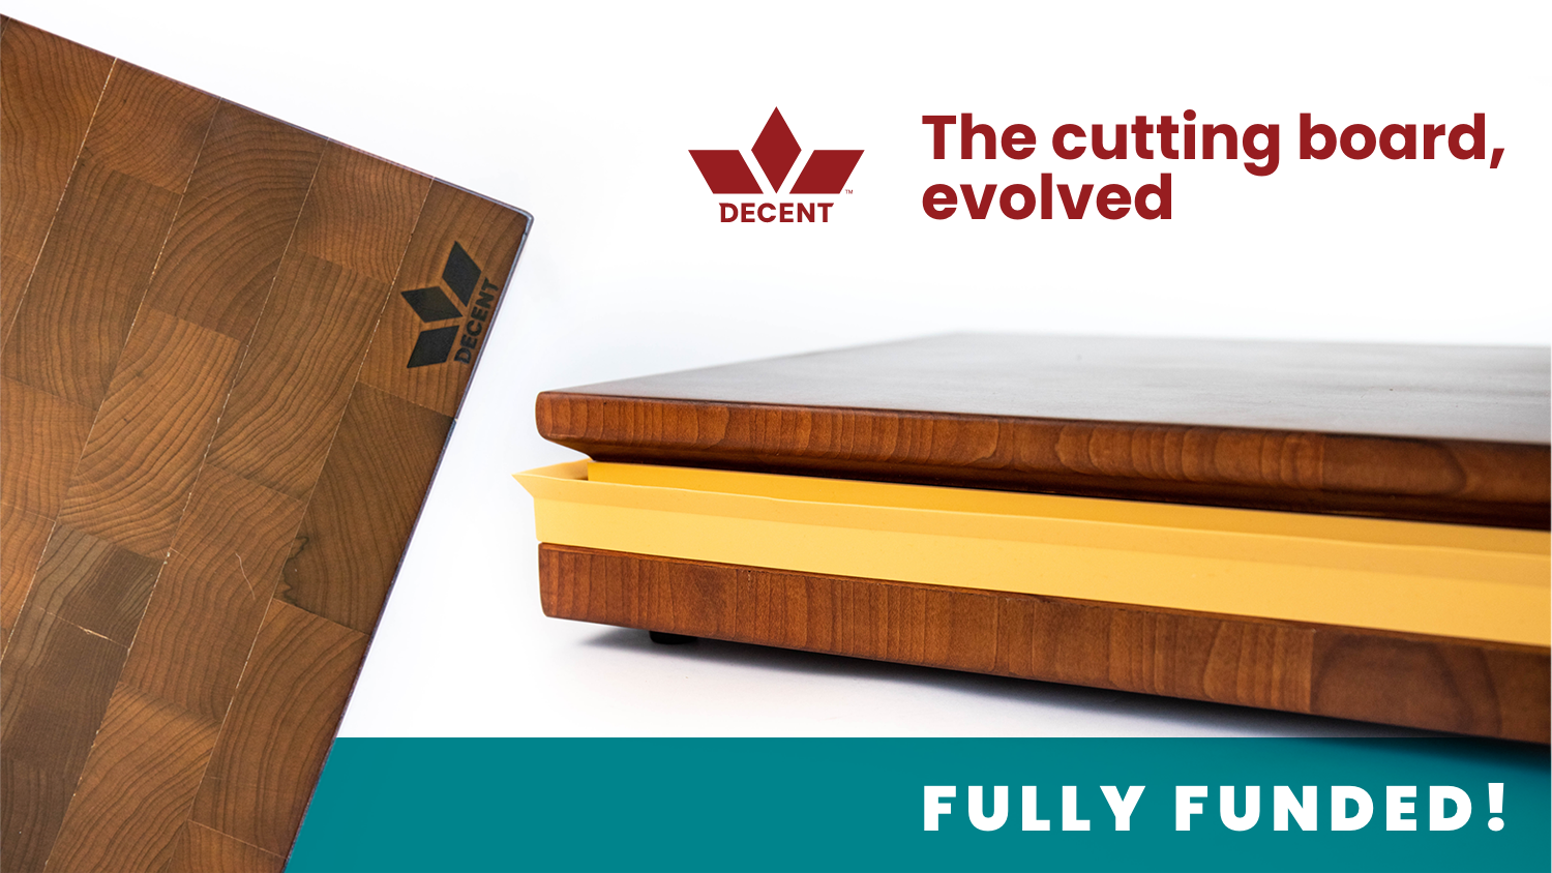 Northern Hard Maple | Self-healing end-grain | Embedded structural support | Innovative Silicone juice groove